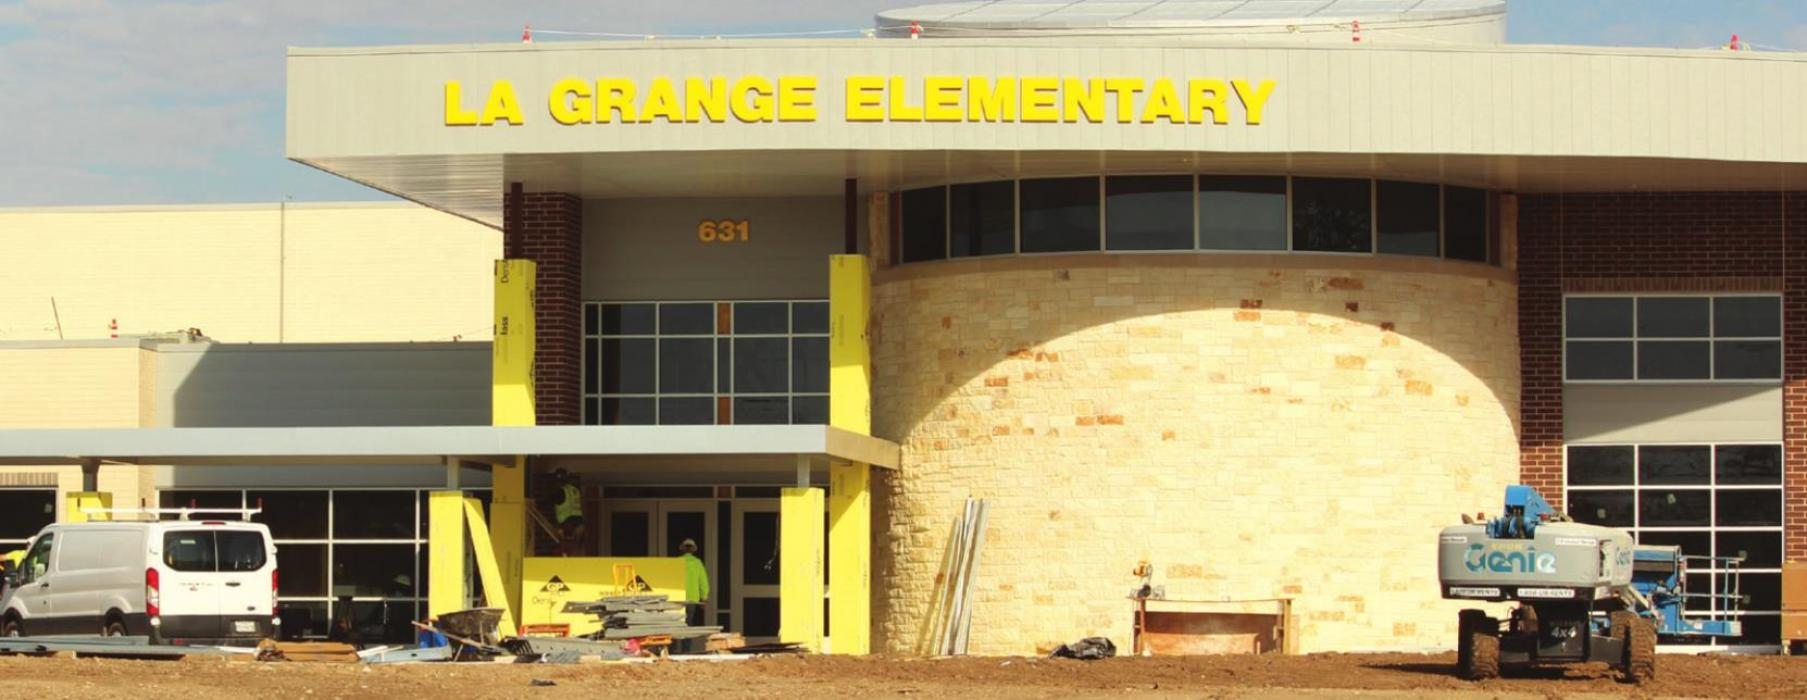 The new La Grange Elementary building is getting its final touches, including signage last week.